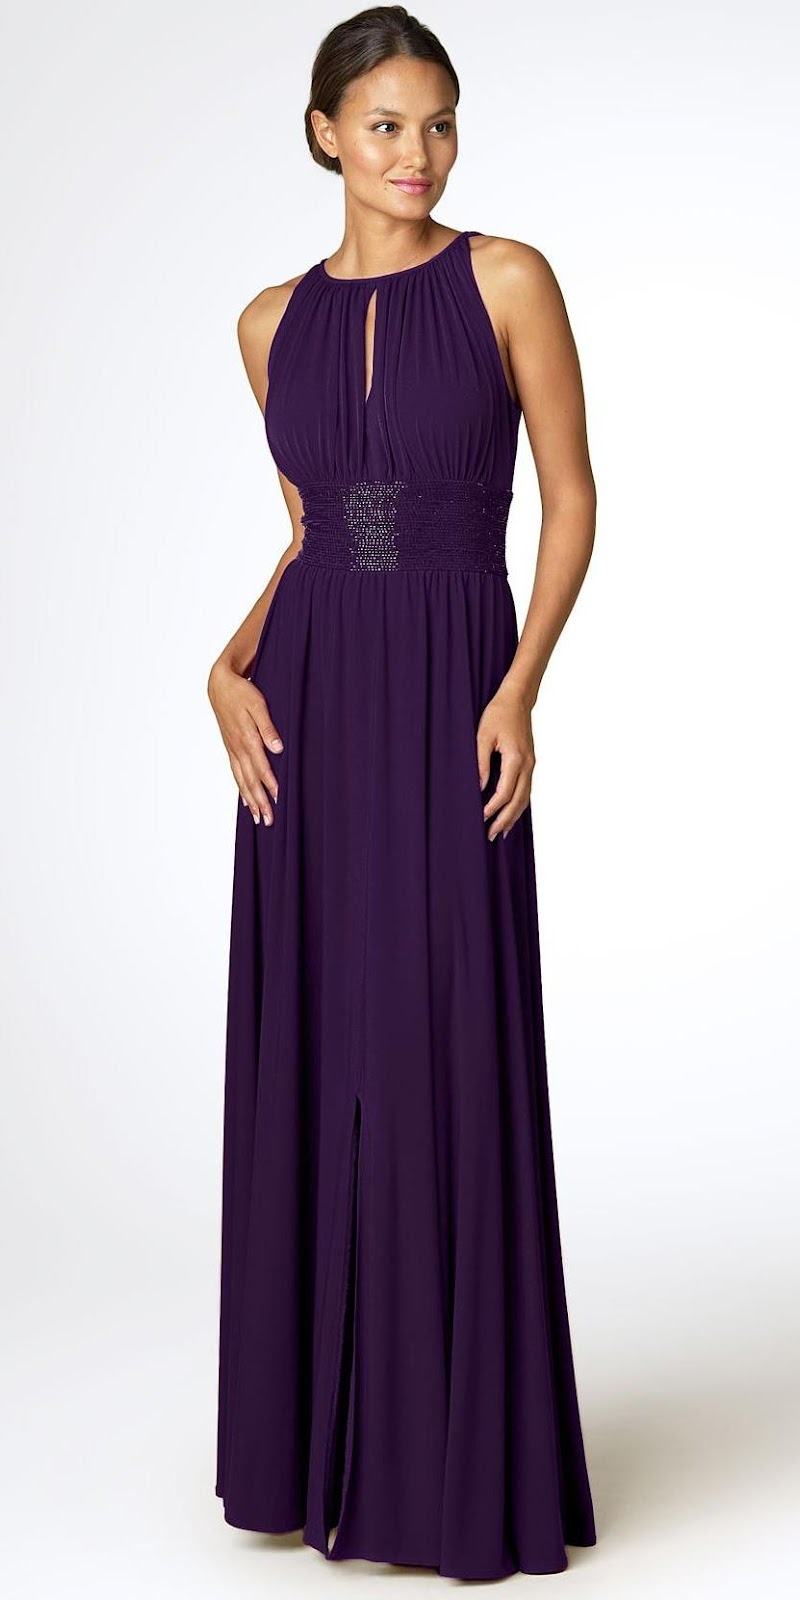 Length : Floor Length 2.Fabric : Satin 3.Neckline : Bateau About Us: Our